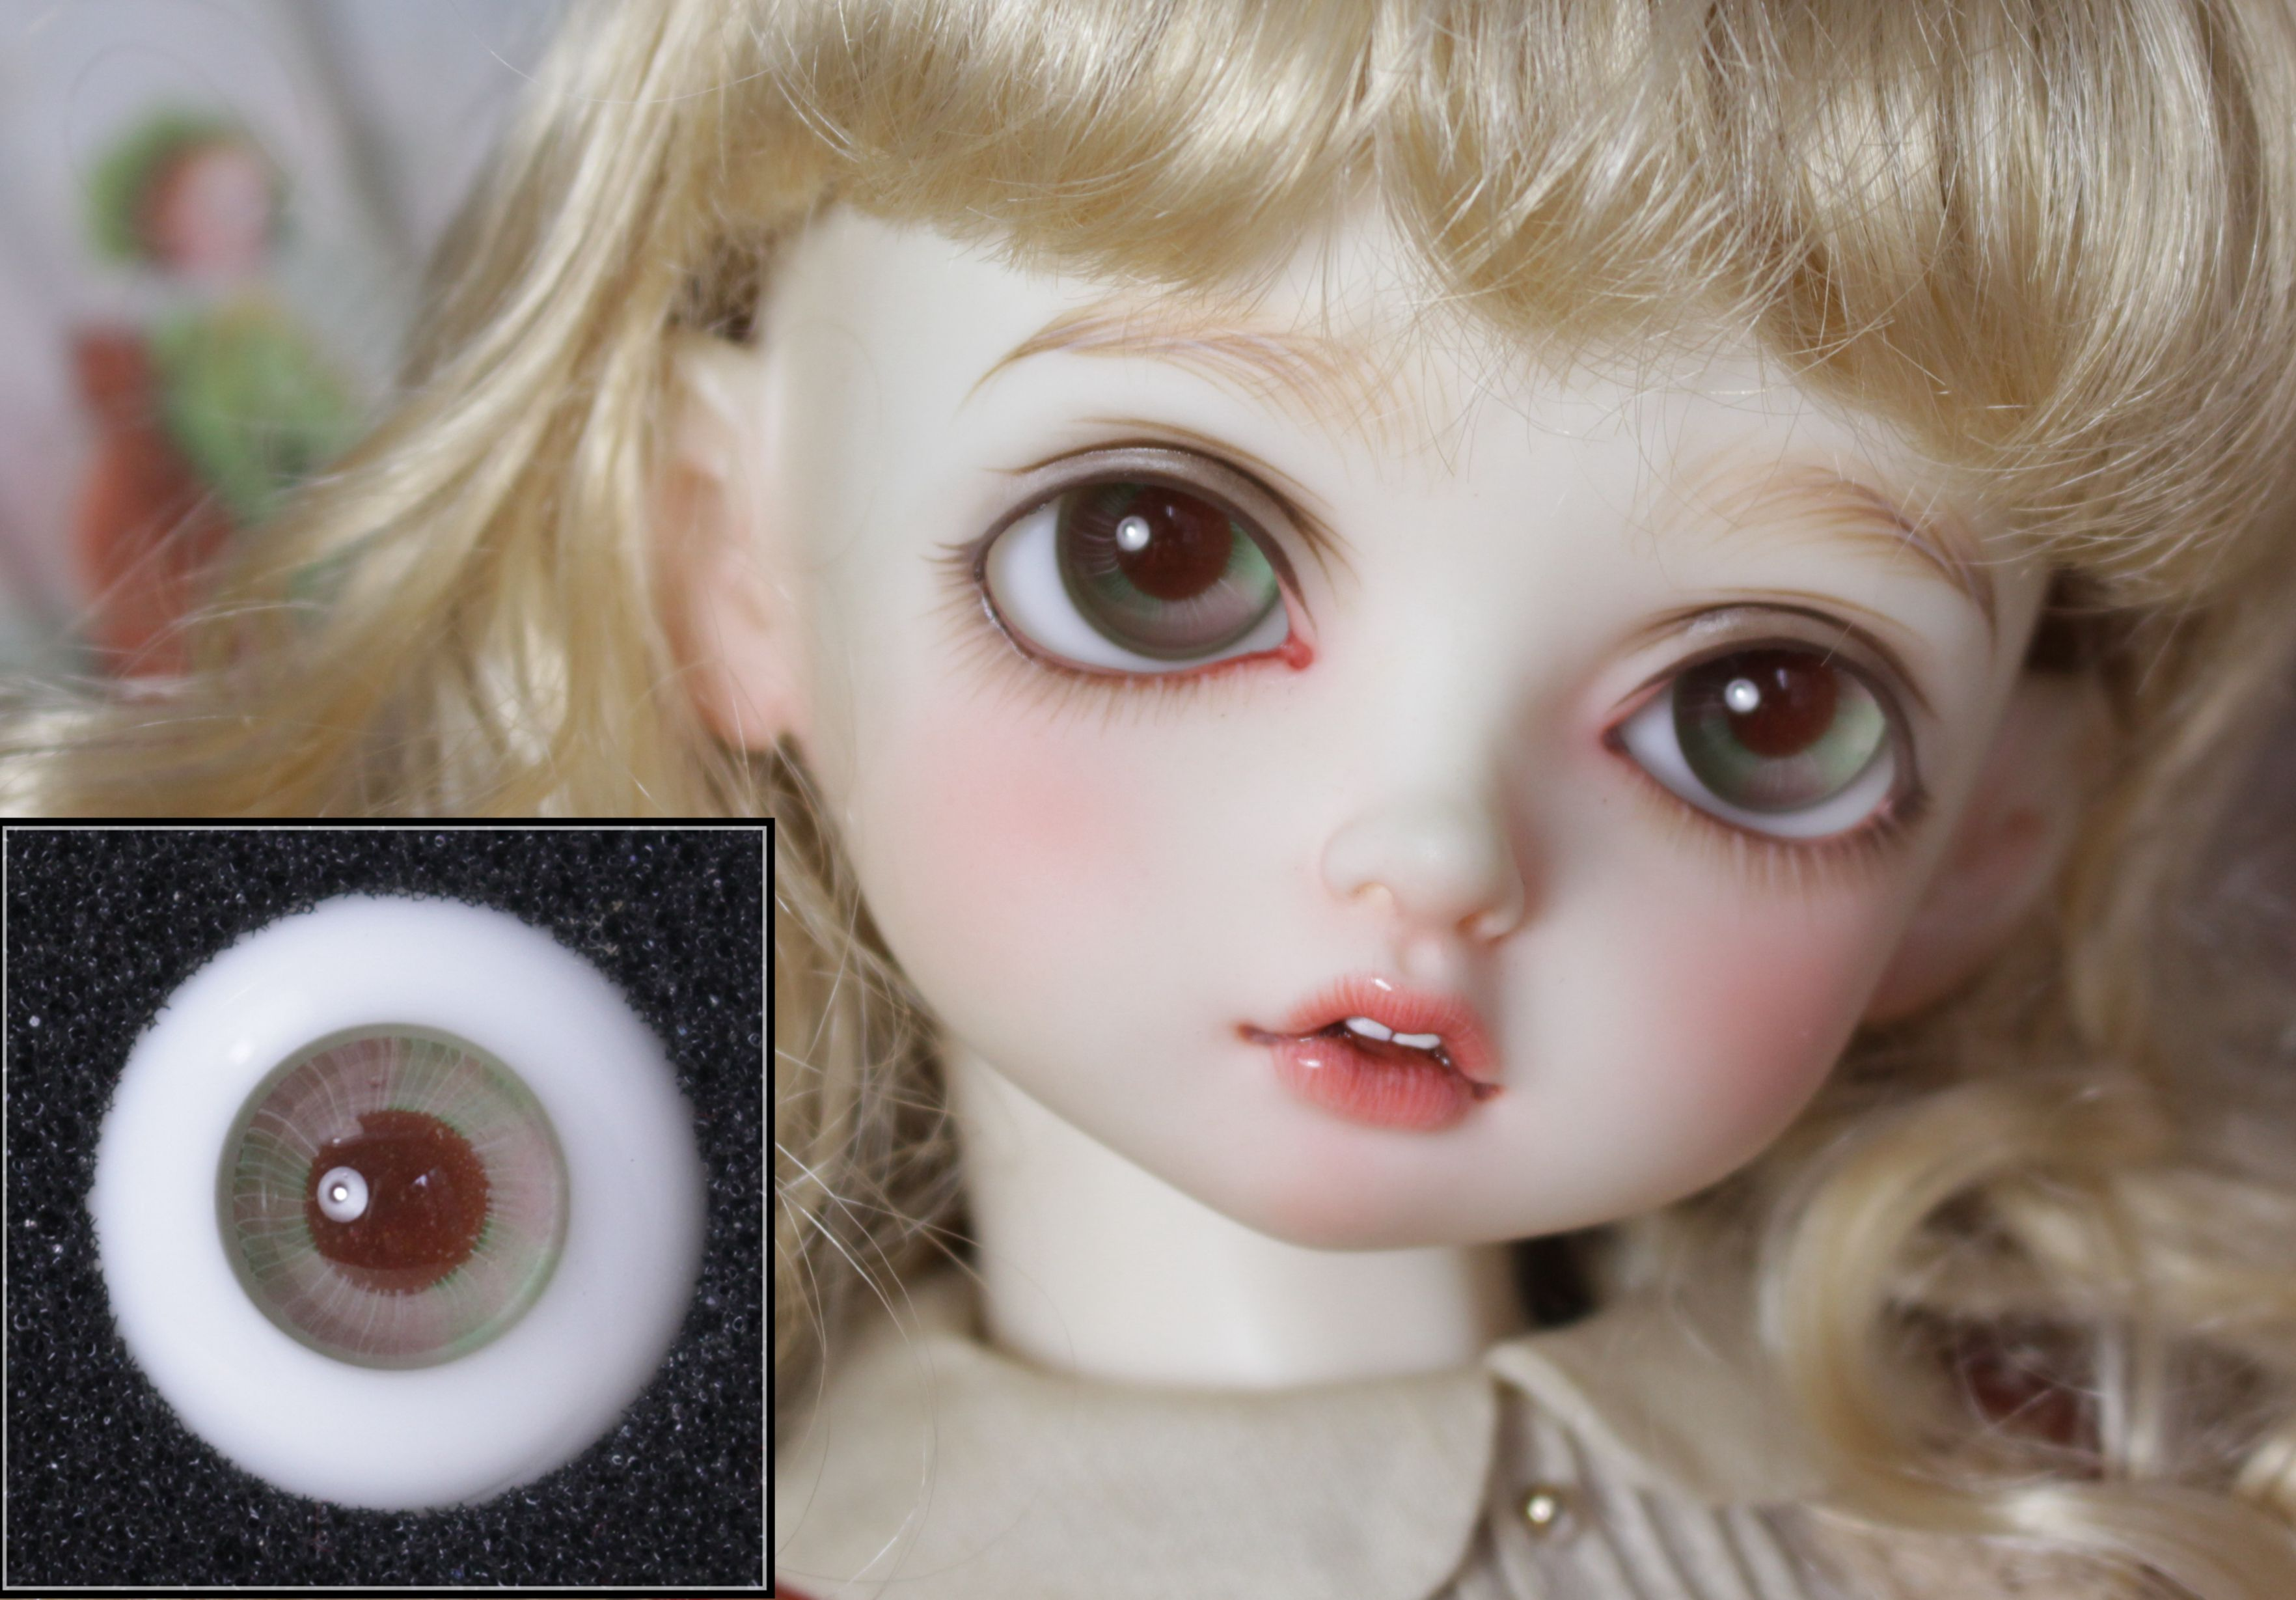 BJD Doll Eyeballs Are Suitable For 12mm14mm16mm18mm Real Life Glass Eyeballs /H03 Pink And Green Doll Accessories [YH]